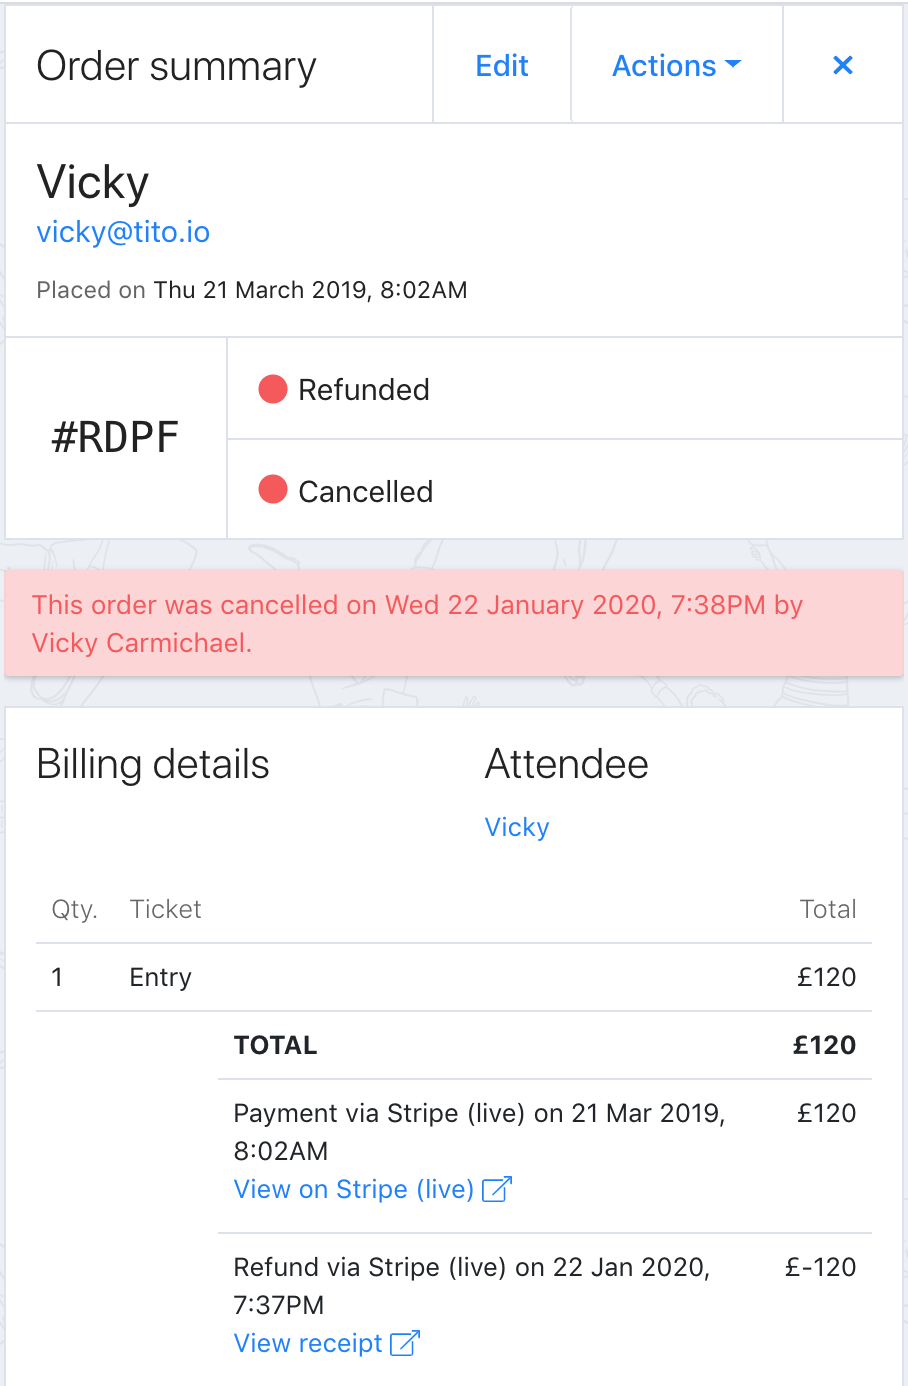 A screenshot of an Order summary showing that the order has been refunded and cancelled.